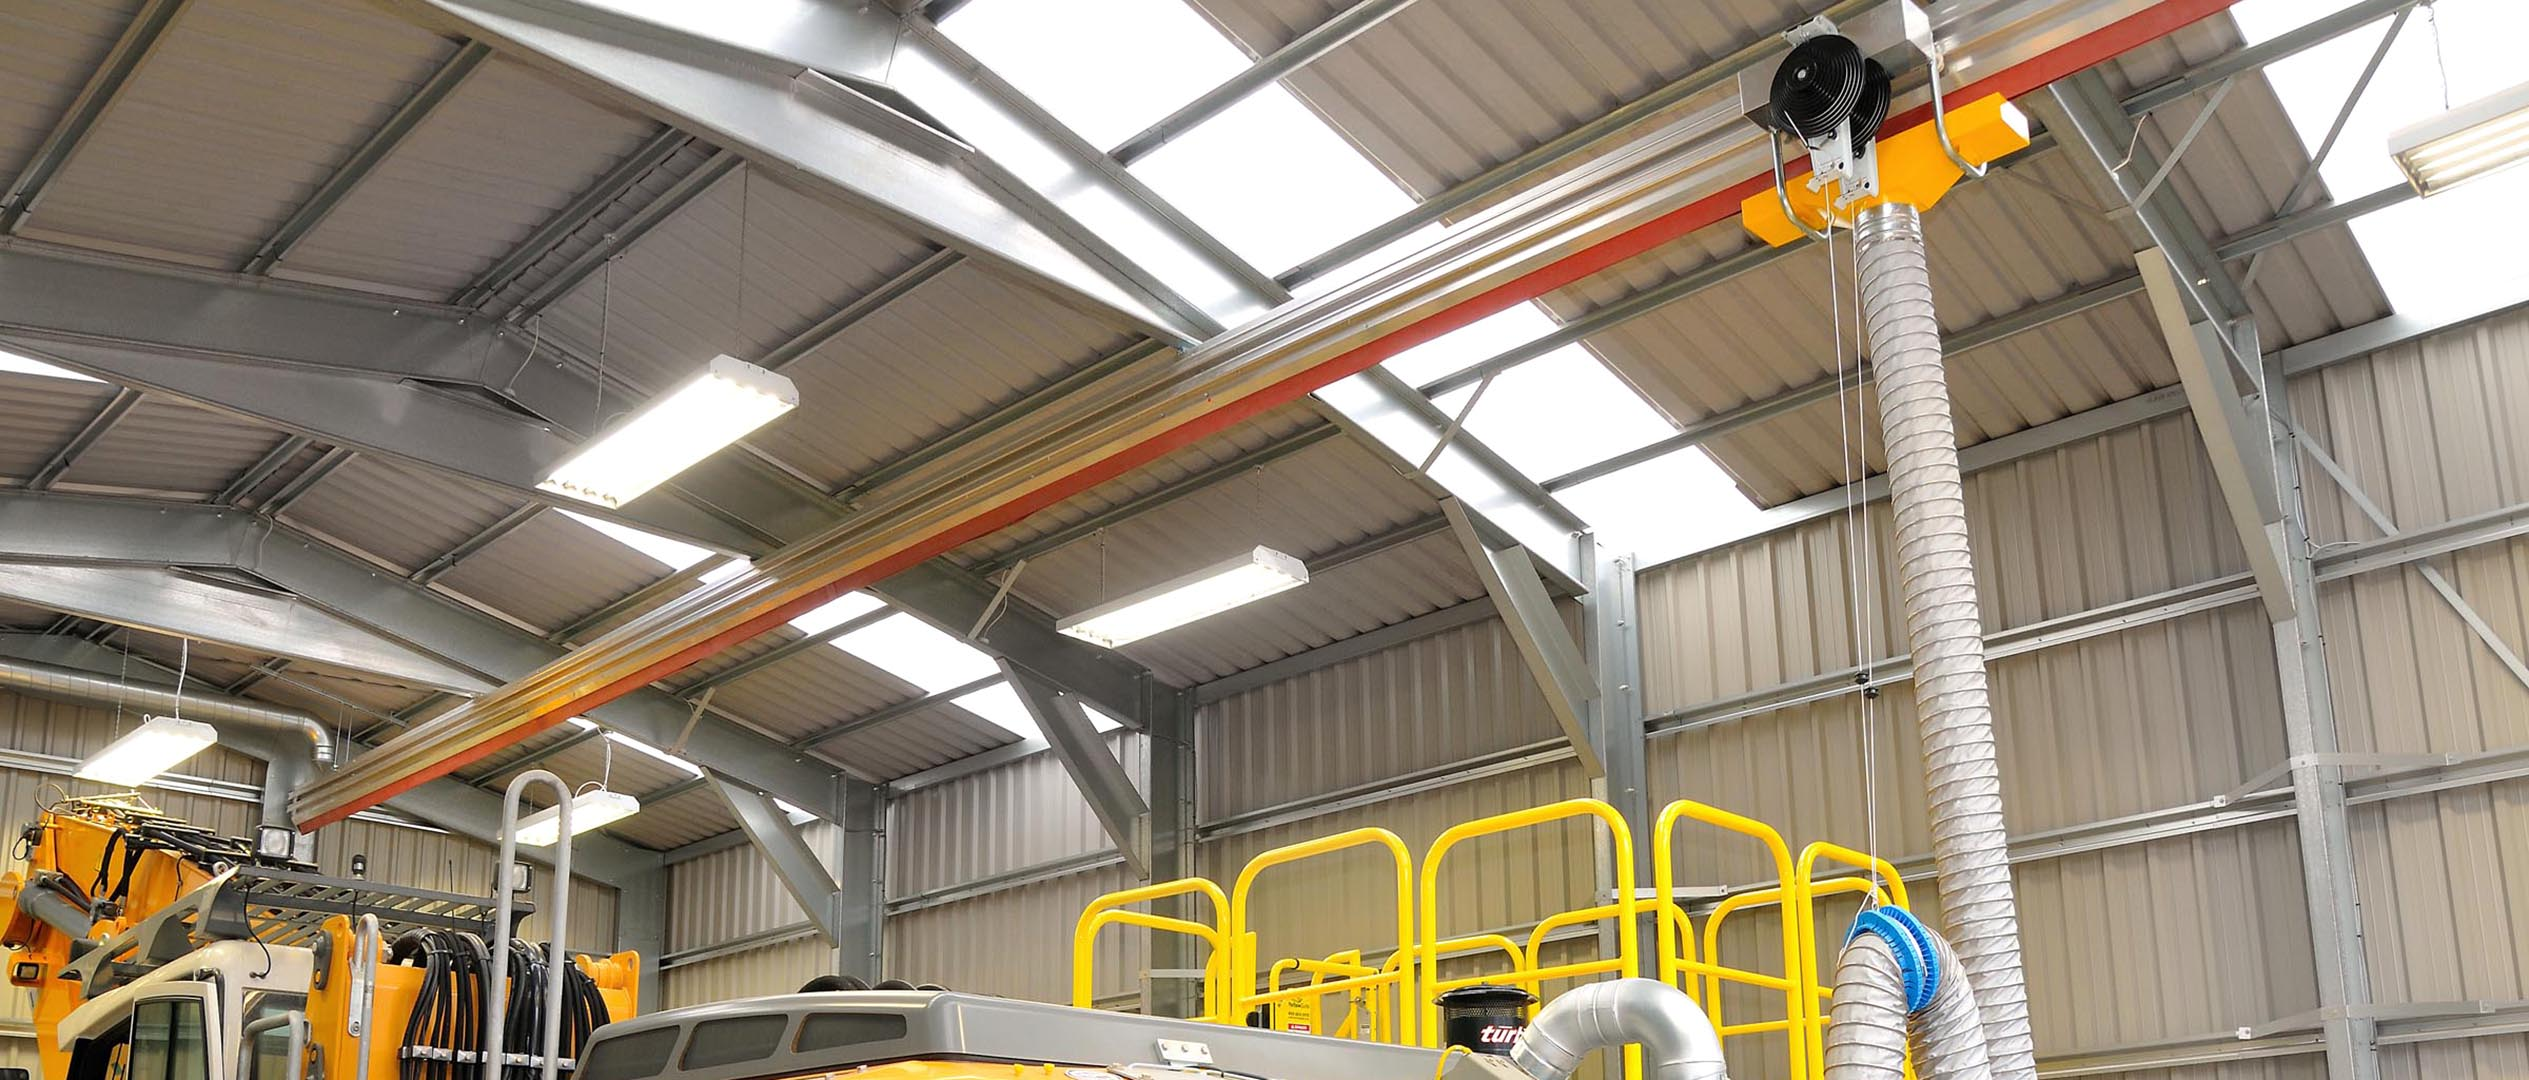 Exhaust Extraction Systems for Educational Facilities